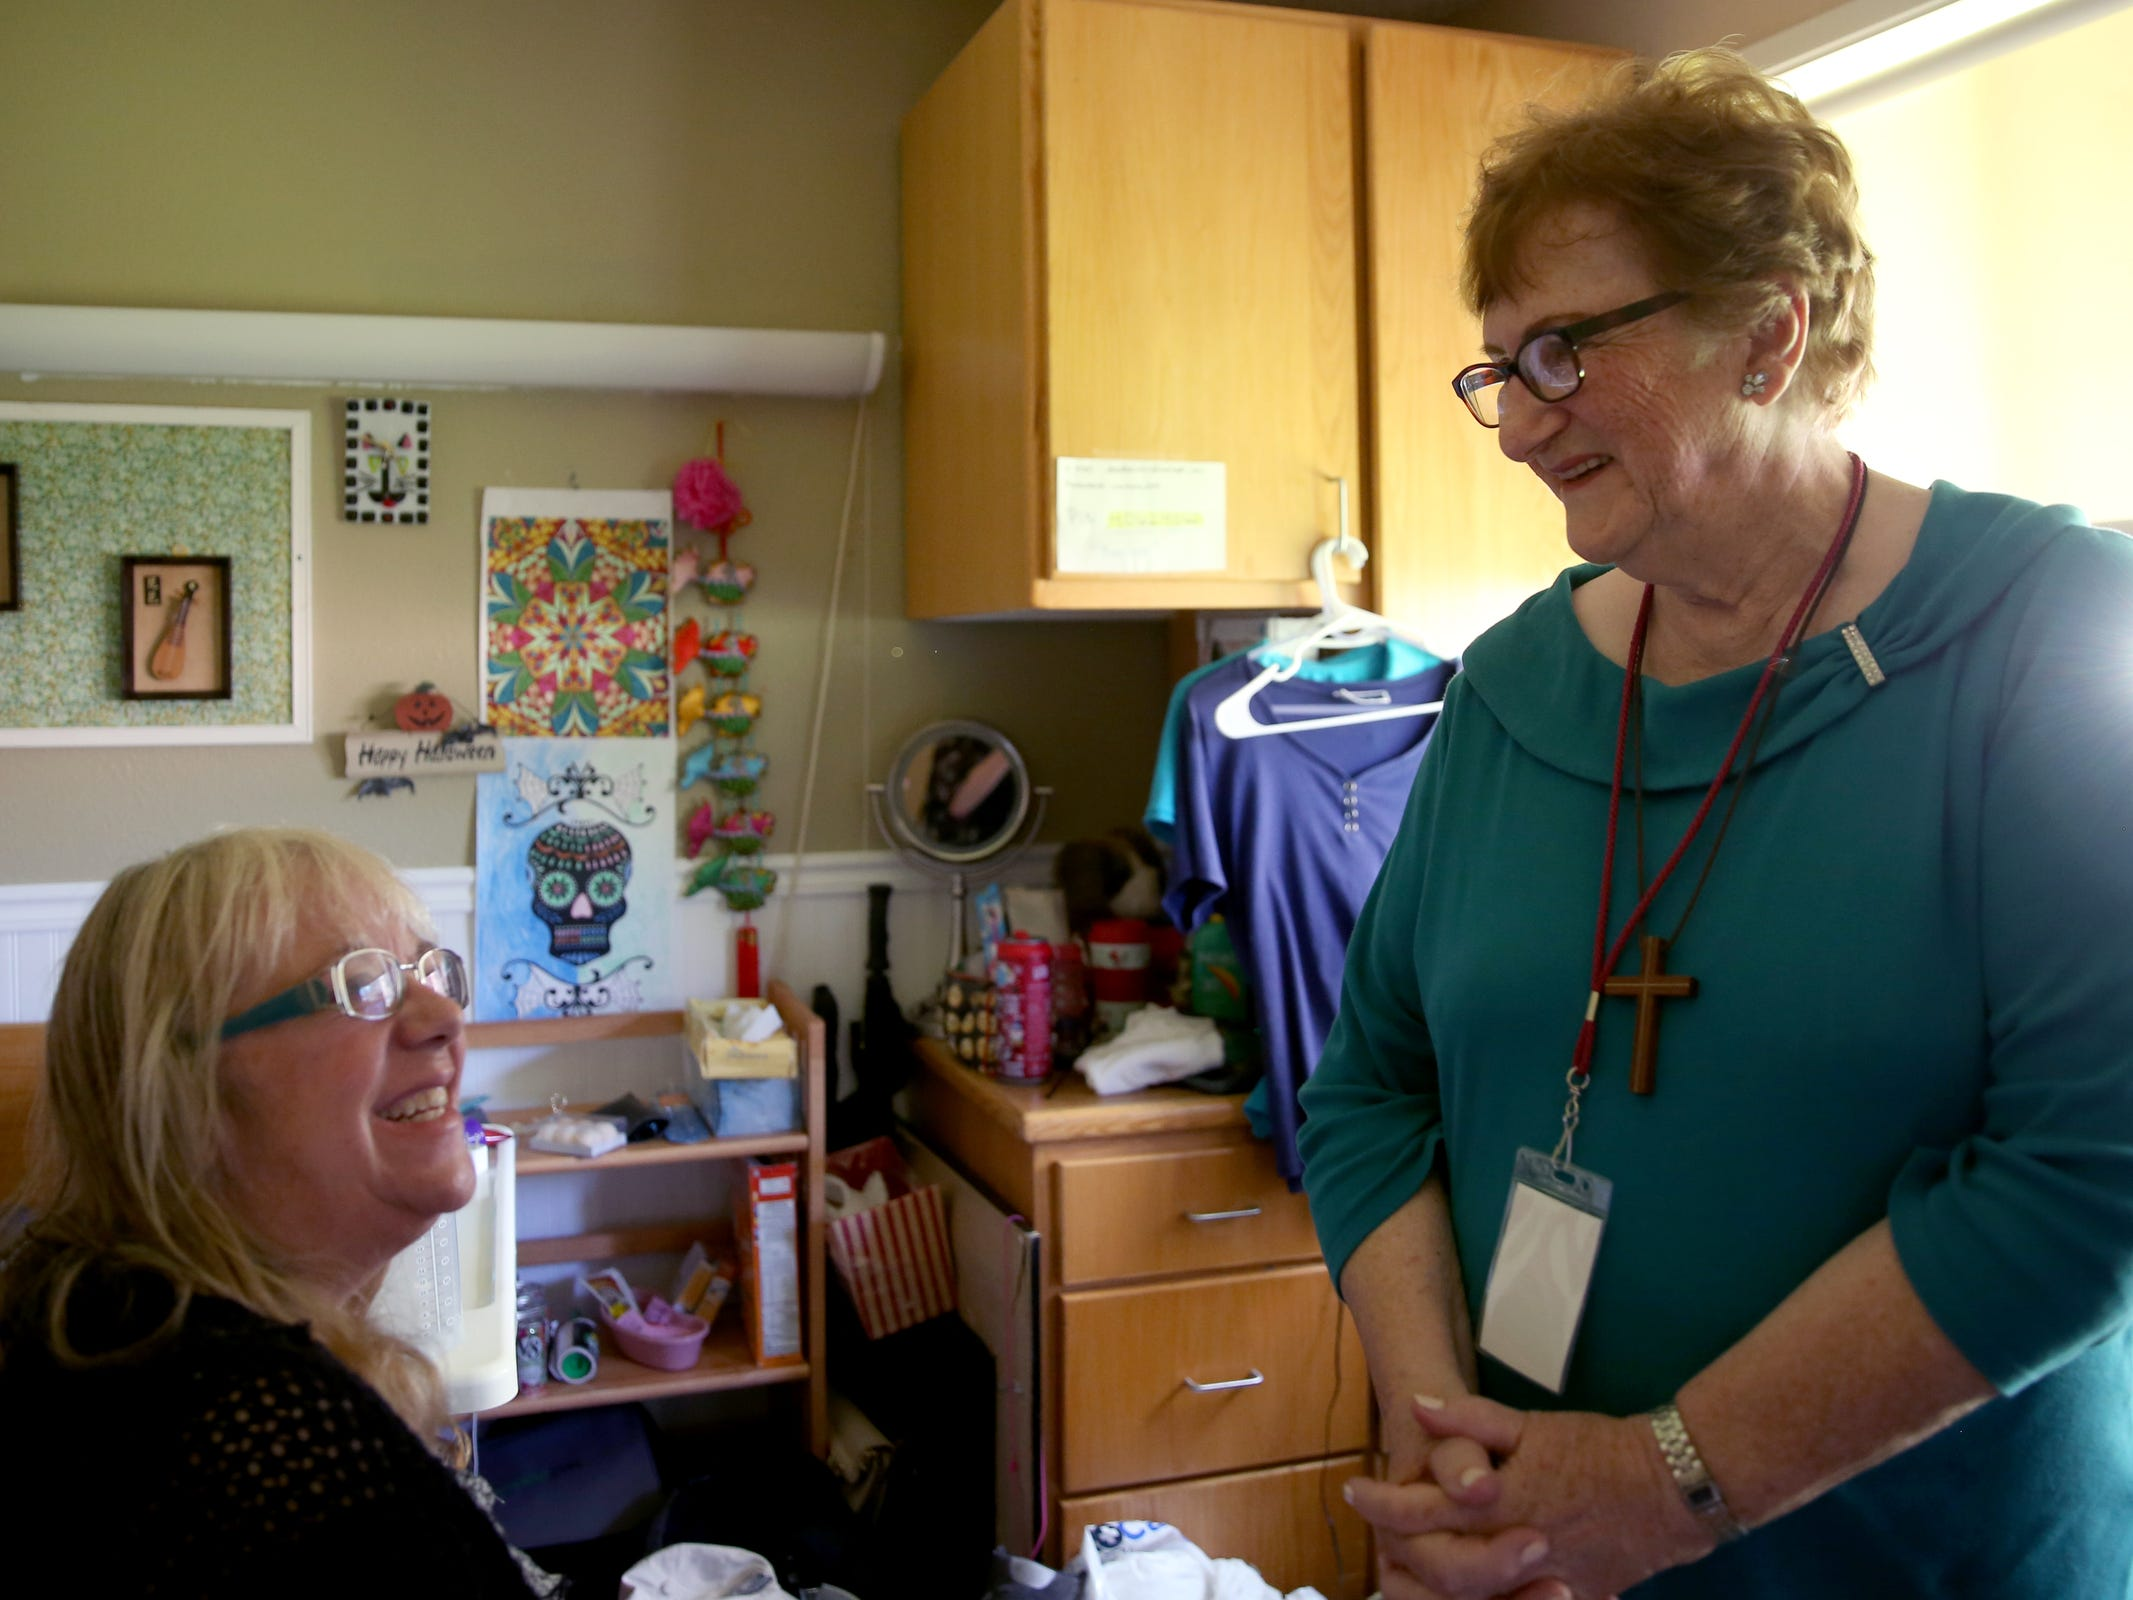 Volunteer Nadine Owings, right, chats with Melody Griffiths during a visit by the Friendship Brigade, a group of volunteers that focuses on spreading awareness about senior isolation and loneliness, at The Oaks at Sherwood Park in in Keizer on May 9, 2019.